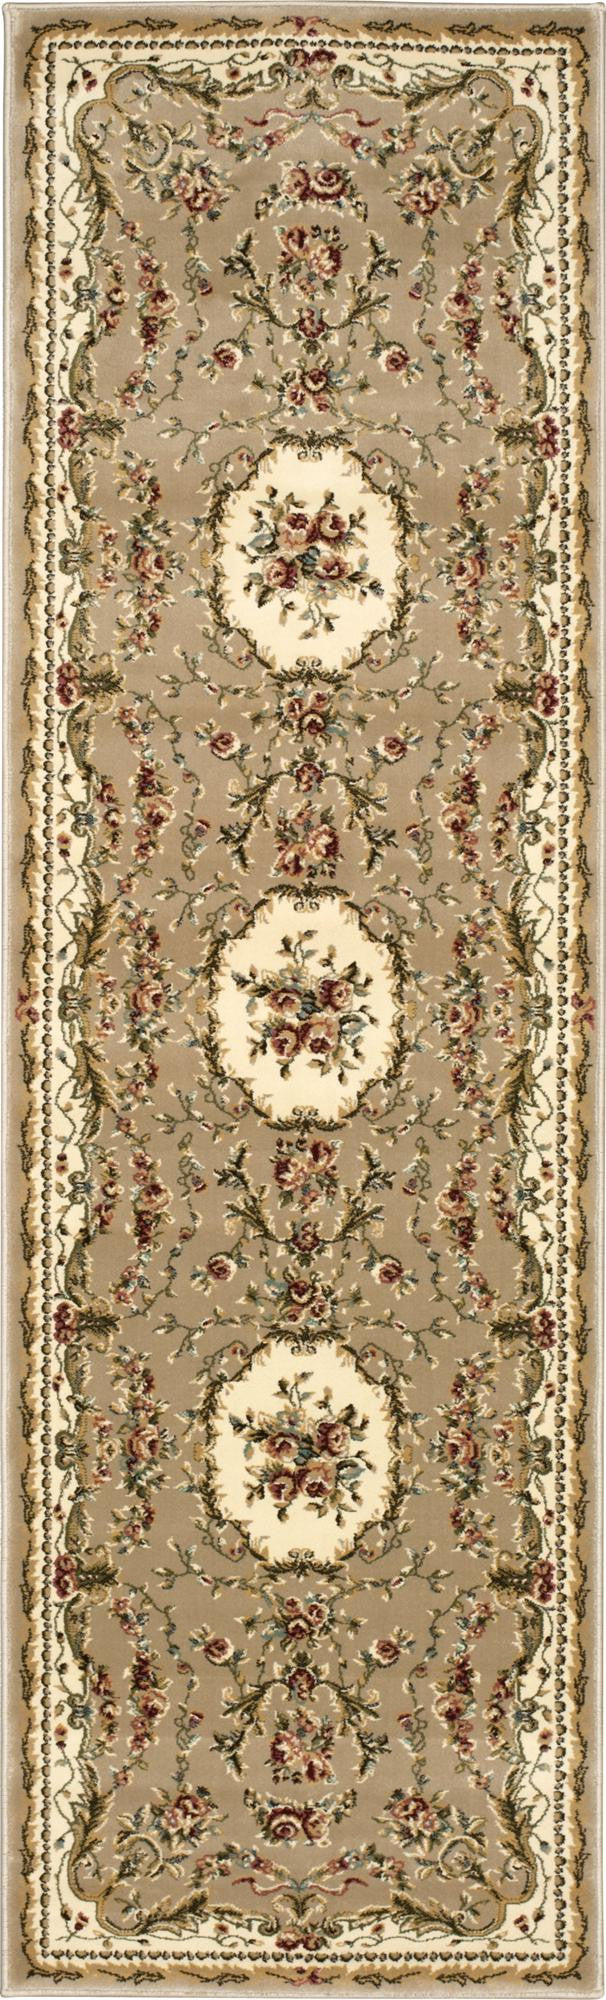 Nourison Bordeaux Cream Area Rug BOR01 CRM